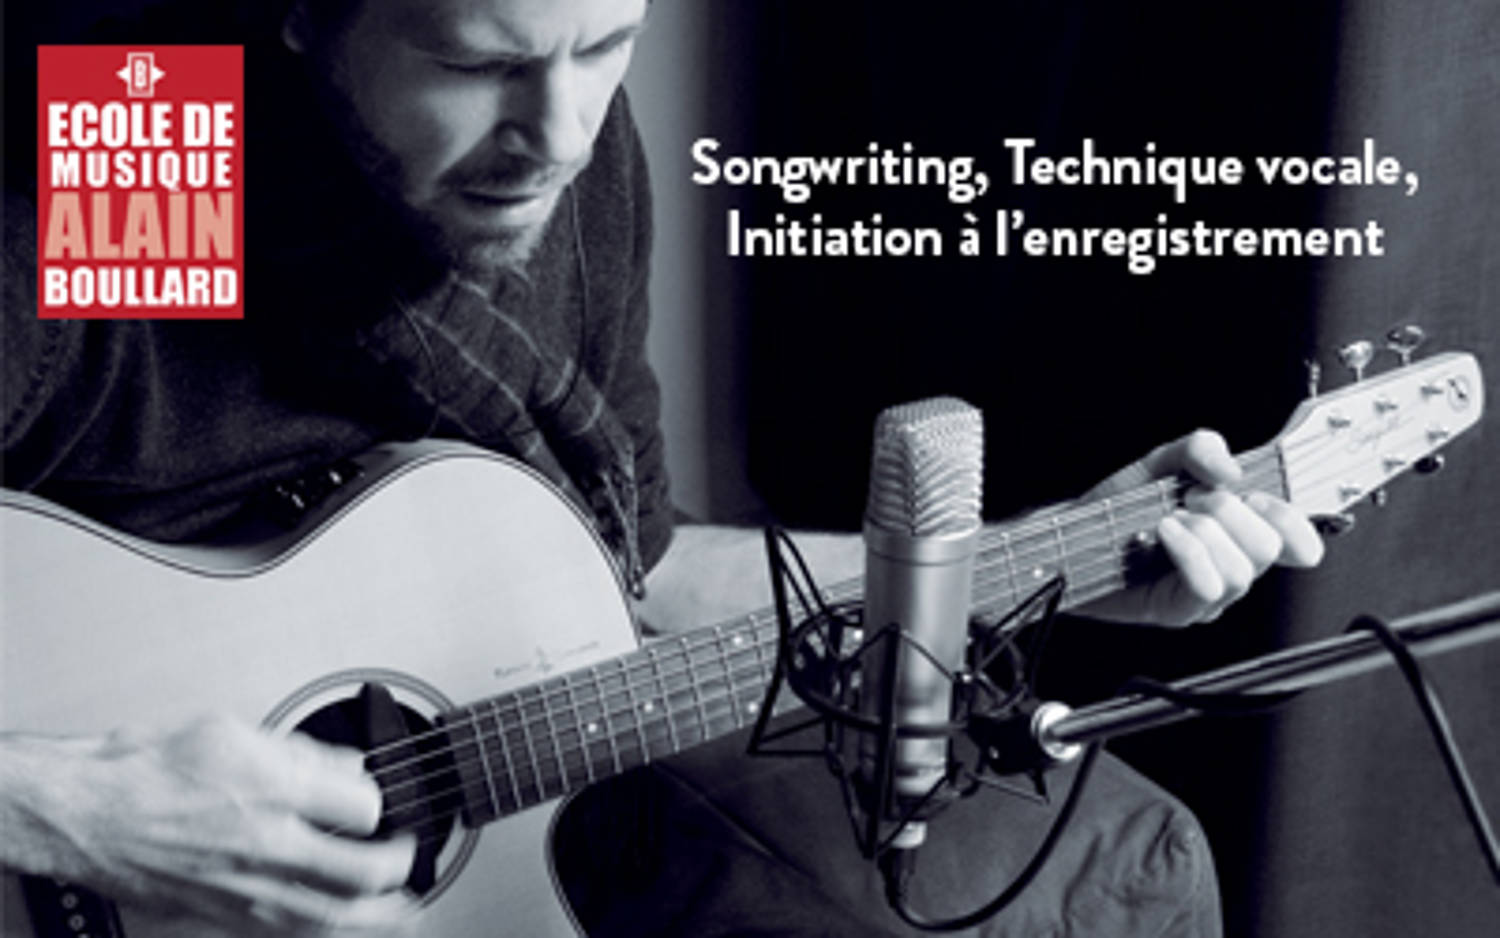 Cours de songwriting, technique vocale, initiation à l'enregistrement